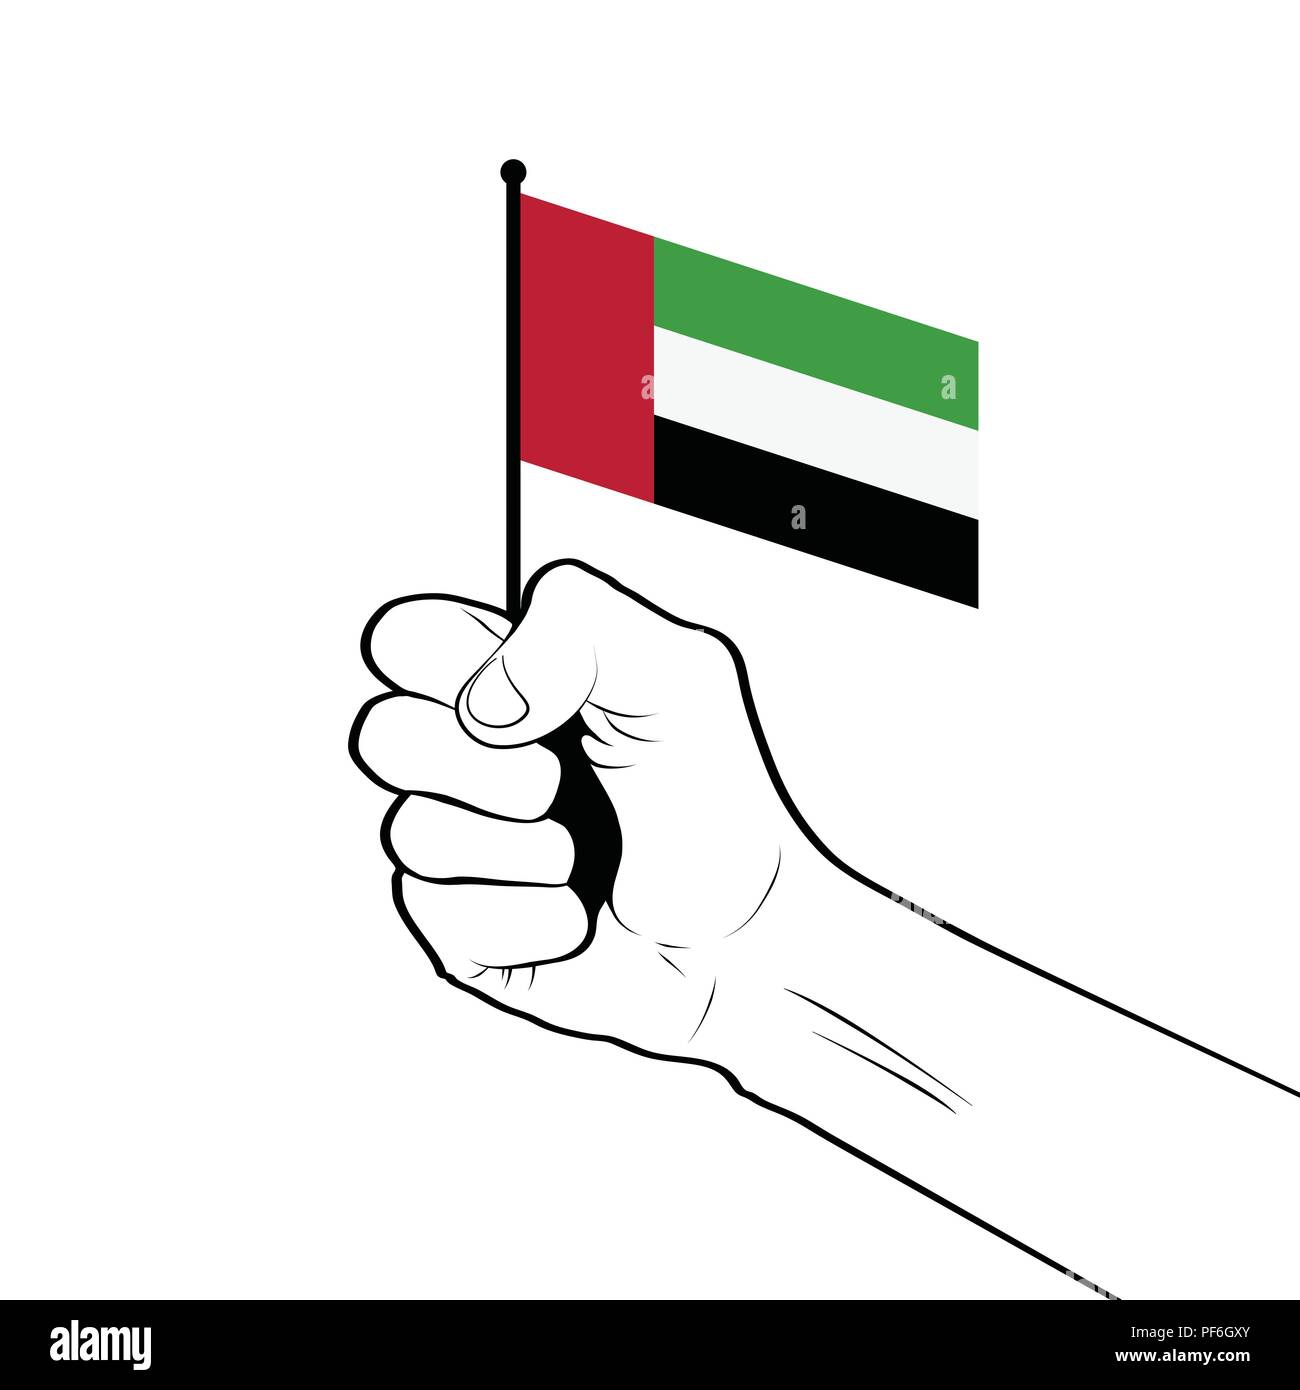 Clenched fist raised in the air holding the national flag of Uni - Stock Image